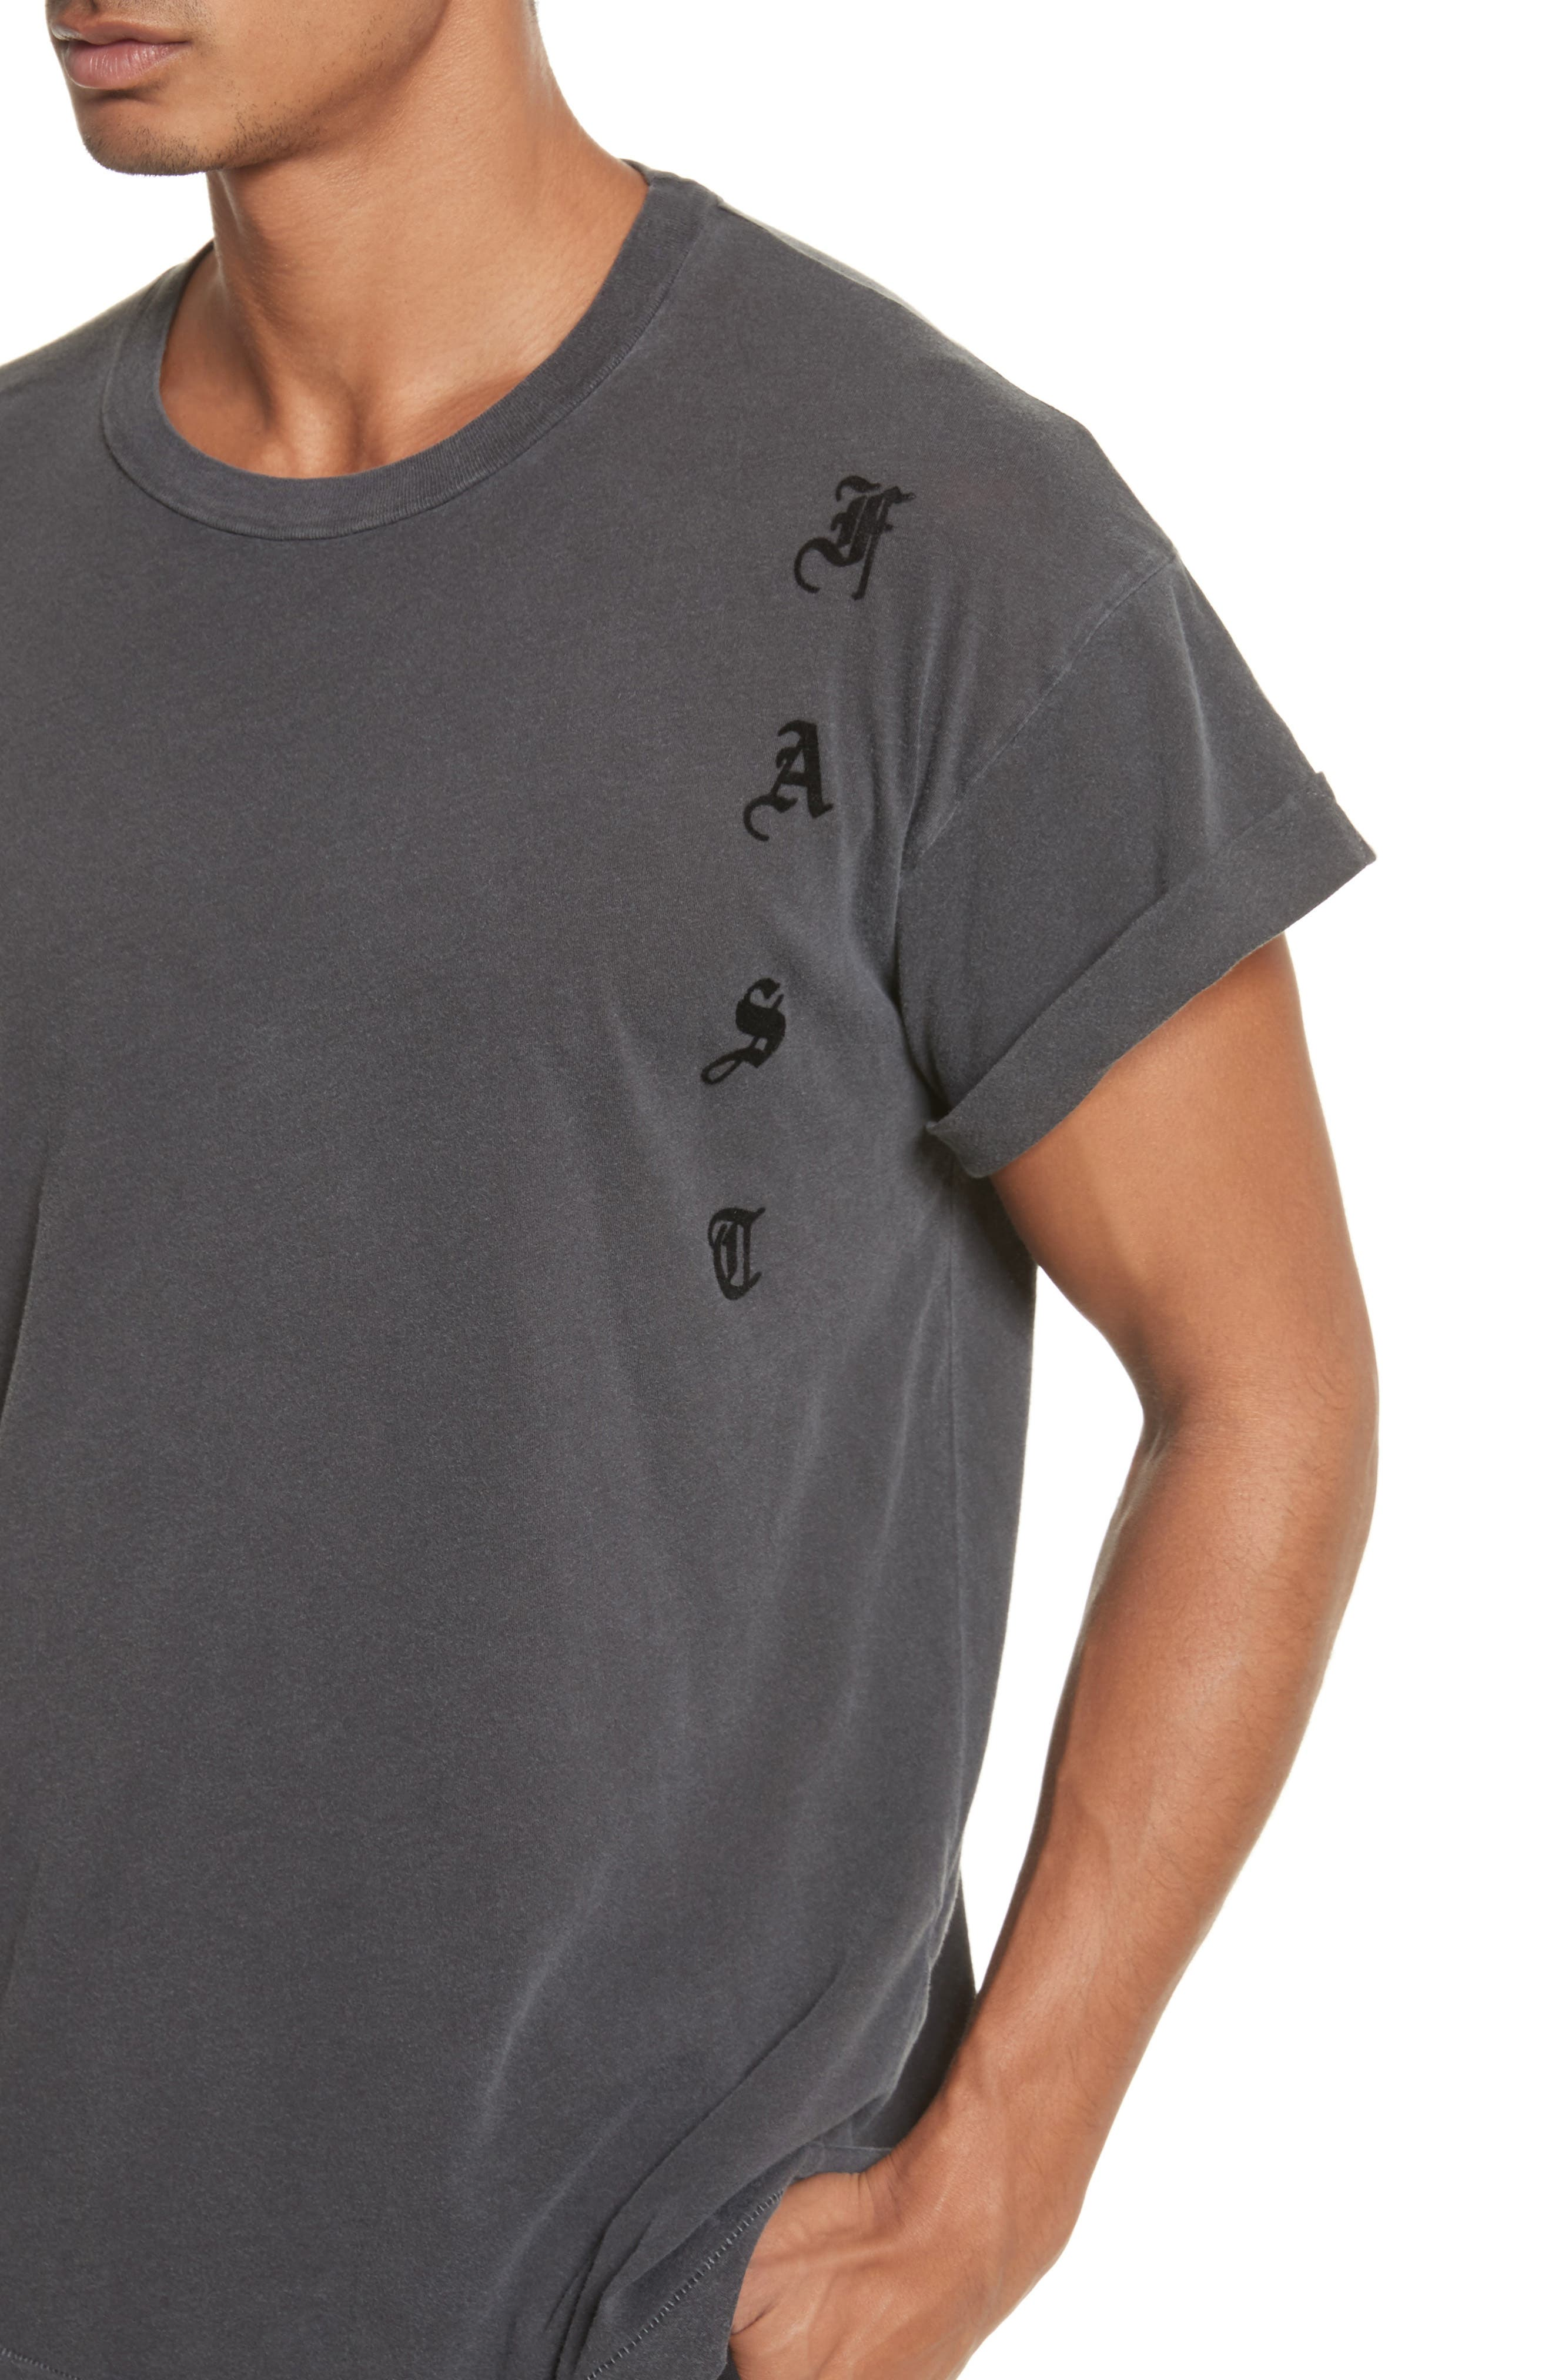 Abassi Embroidered T-Shirt,                             Alternate thumbnail 4, color,                             Blk Pigment